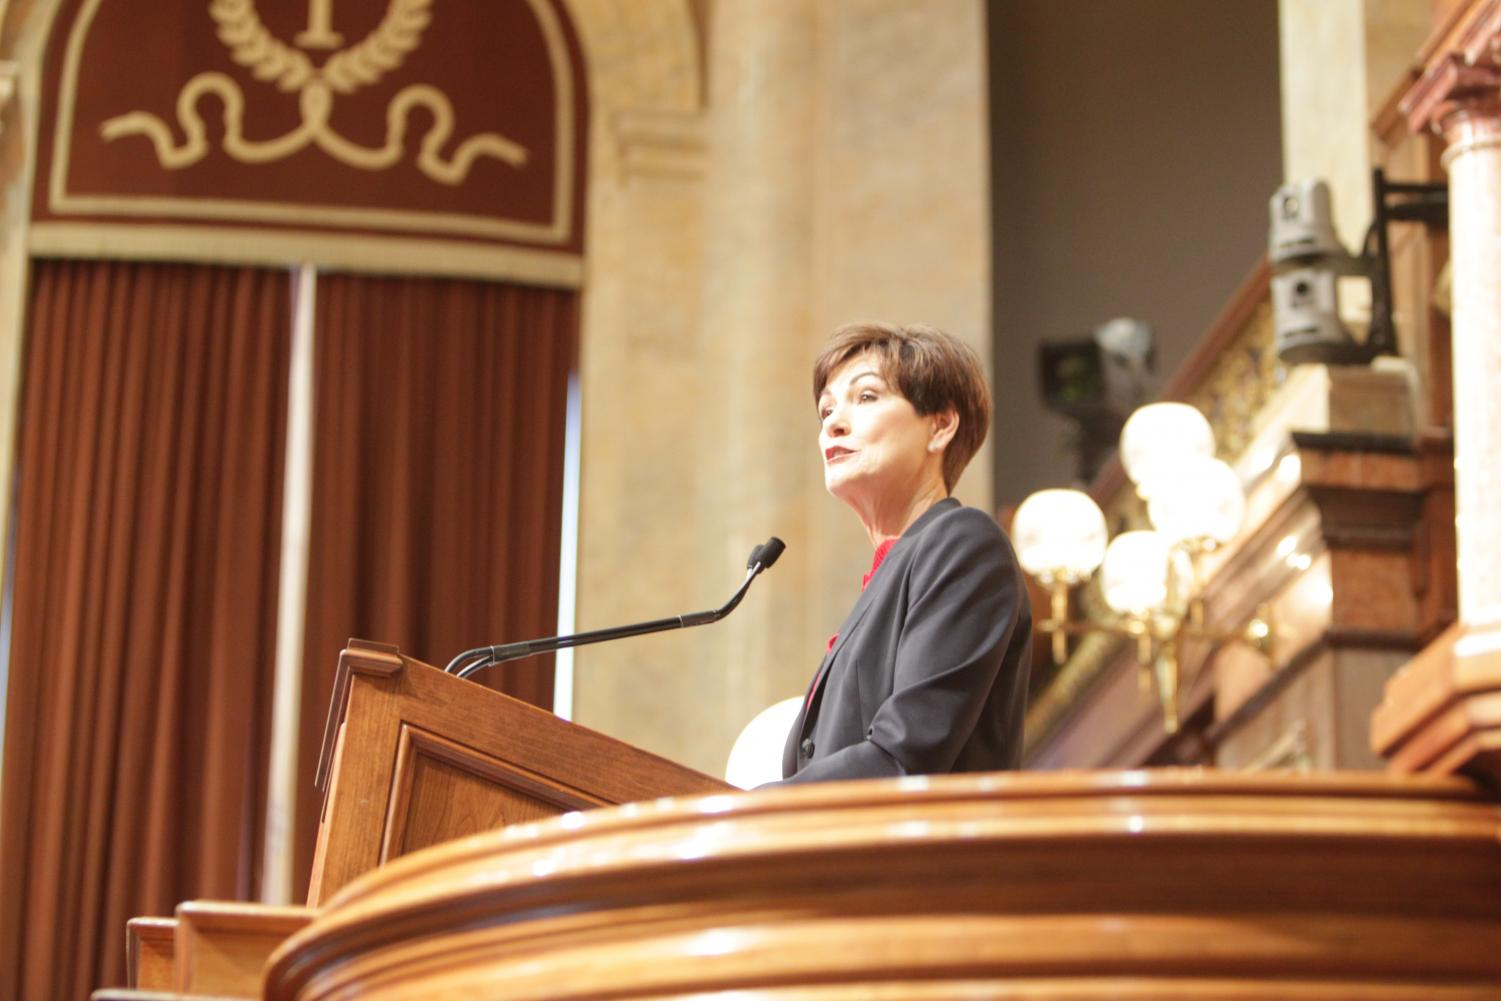 Iowa Gov. Kim Reynolds delivers her Condition of the State address in the House chamber of the State Capitol Building in Des Moines on Jan. 15, 2019. In the address, her first as an elected governor, she largely outlined bipartisan initiatives which have received widespread support.